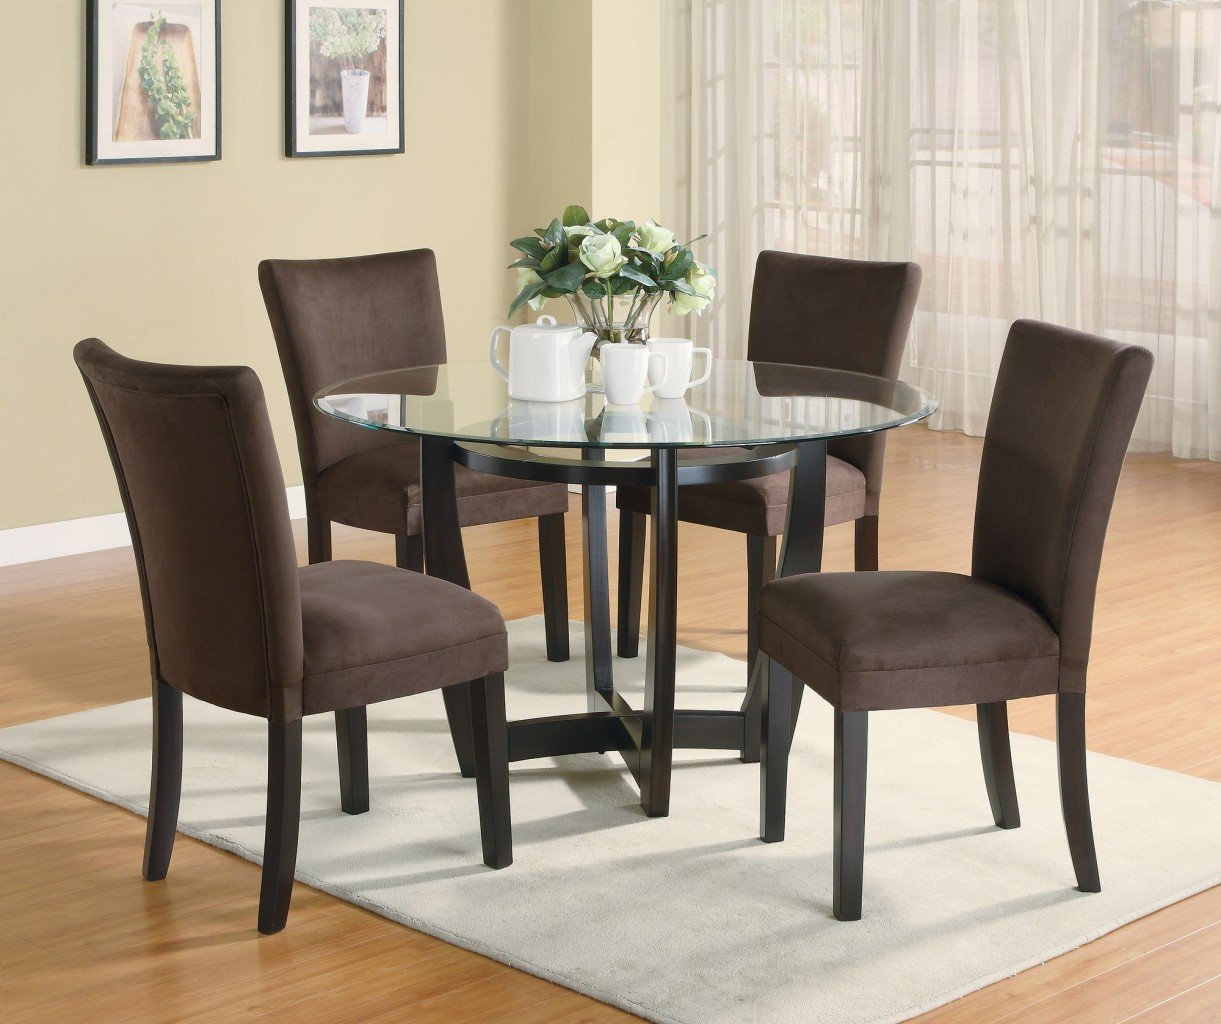 Cheap dining room table sets home furniture design - Dining room furniture benches ideas ...